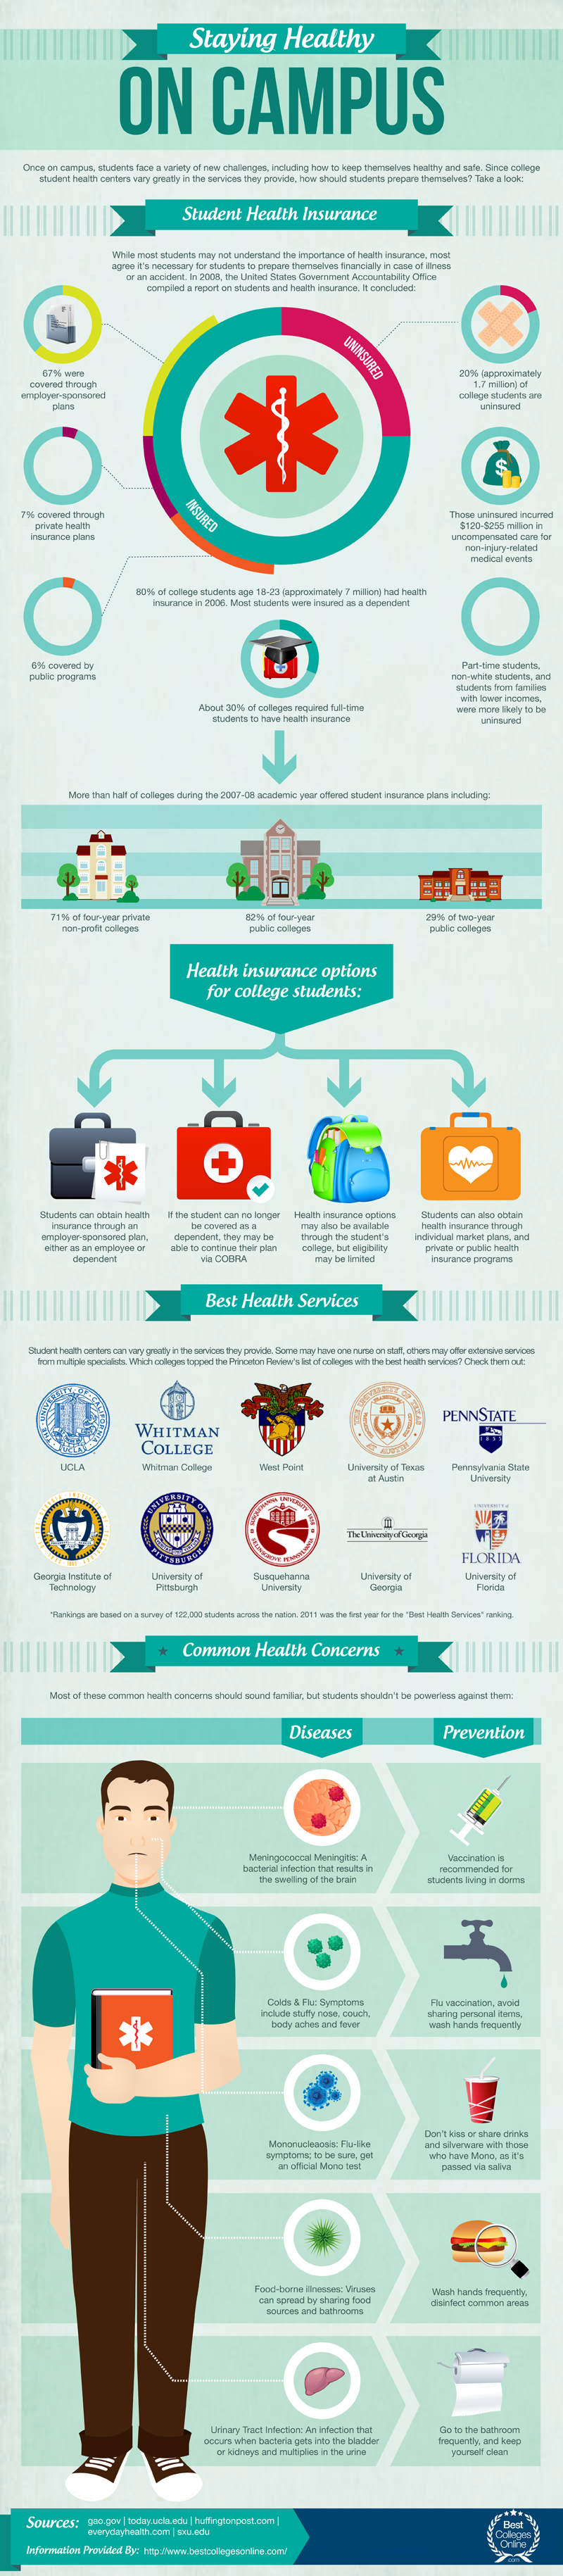 17 Best images about College Life: Health on Pinterest | Health ...